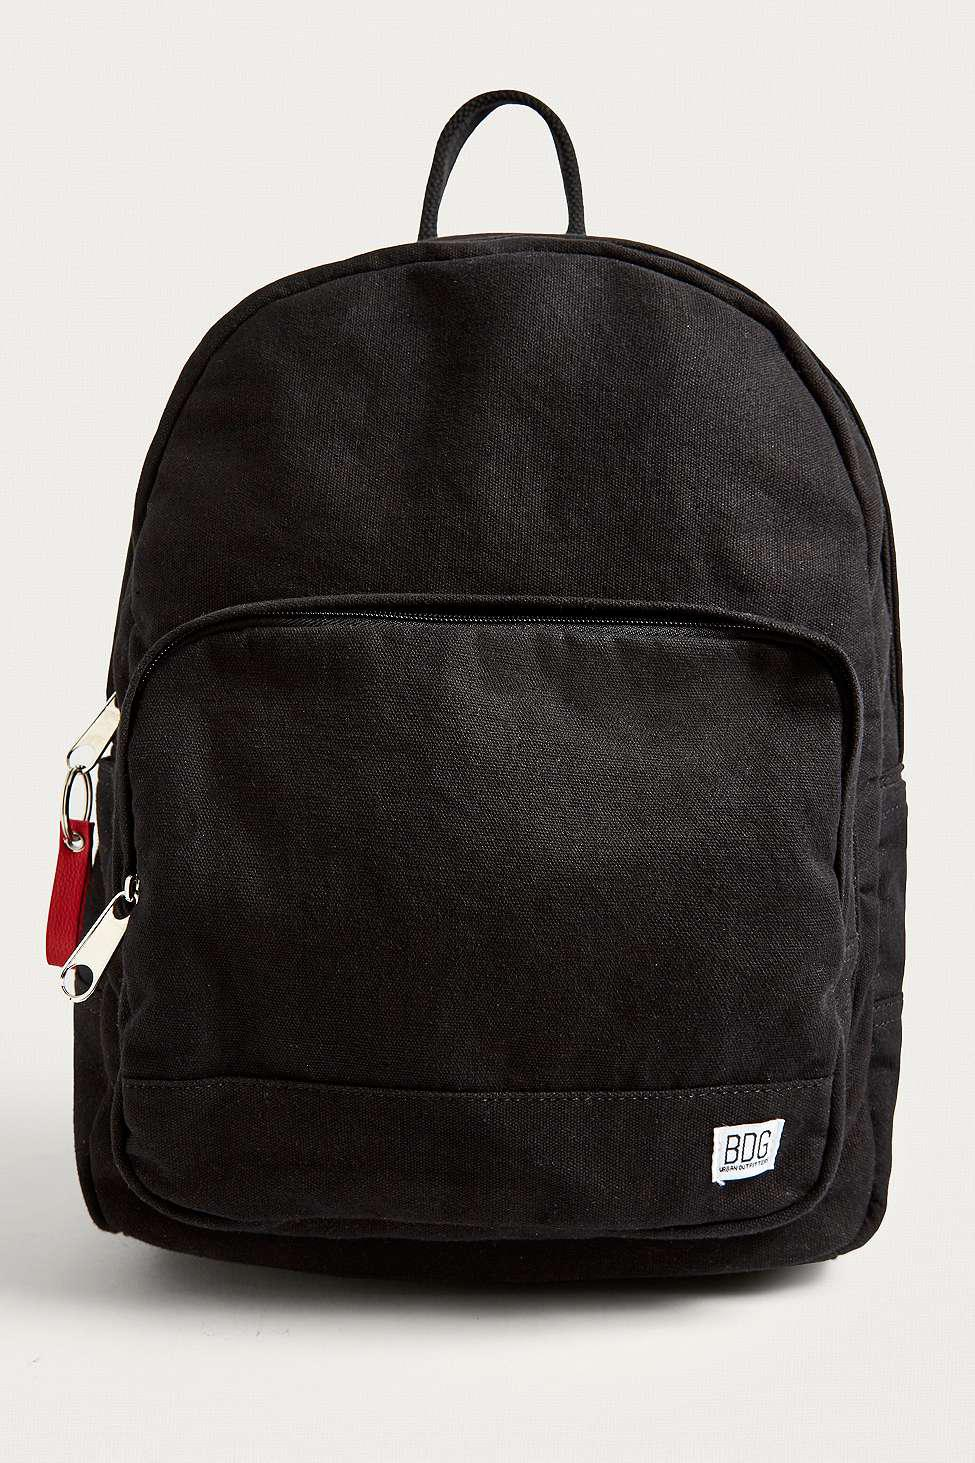 Bdg Black Canvas Roll Top Backpack